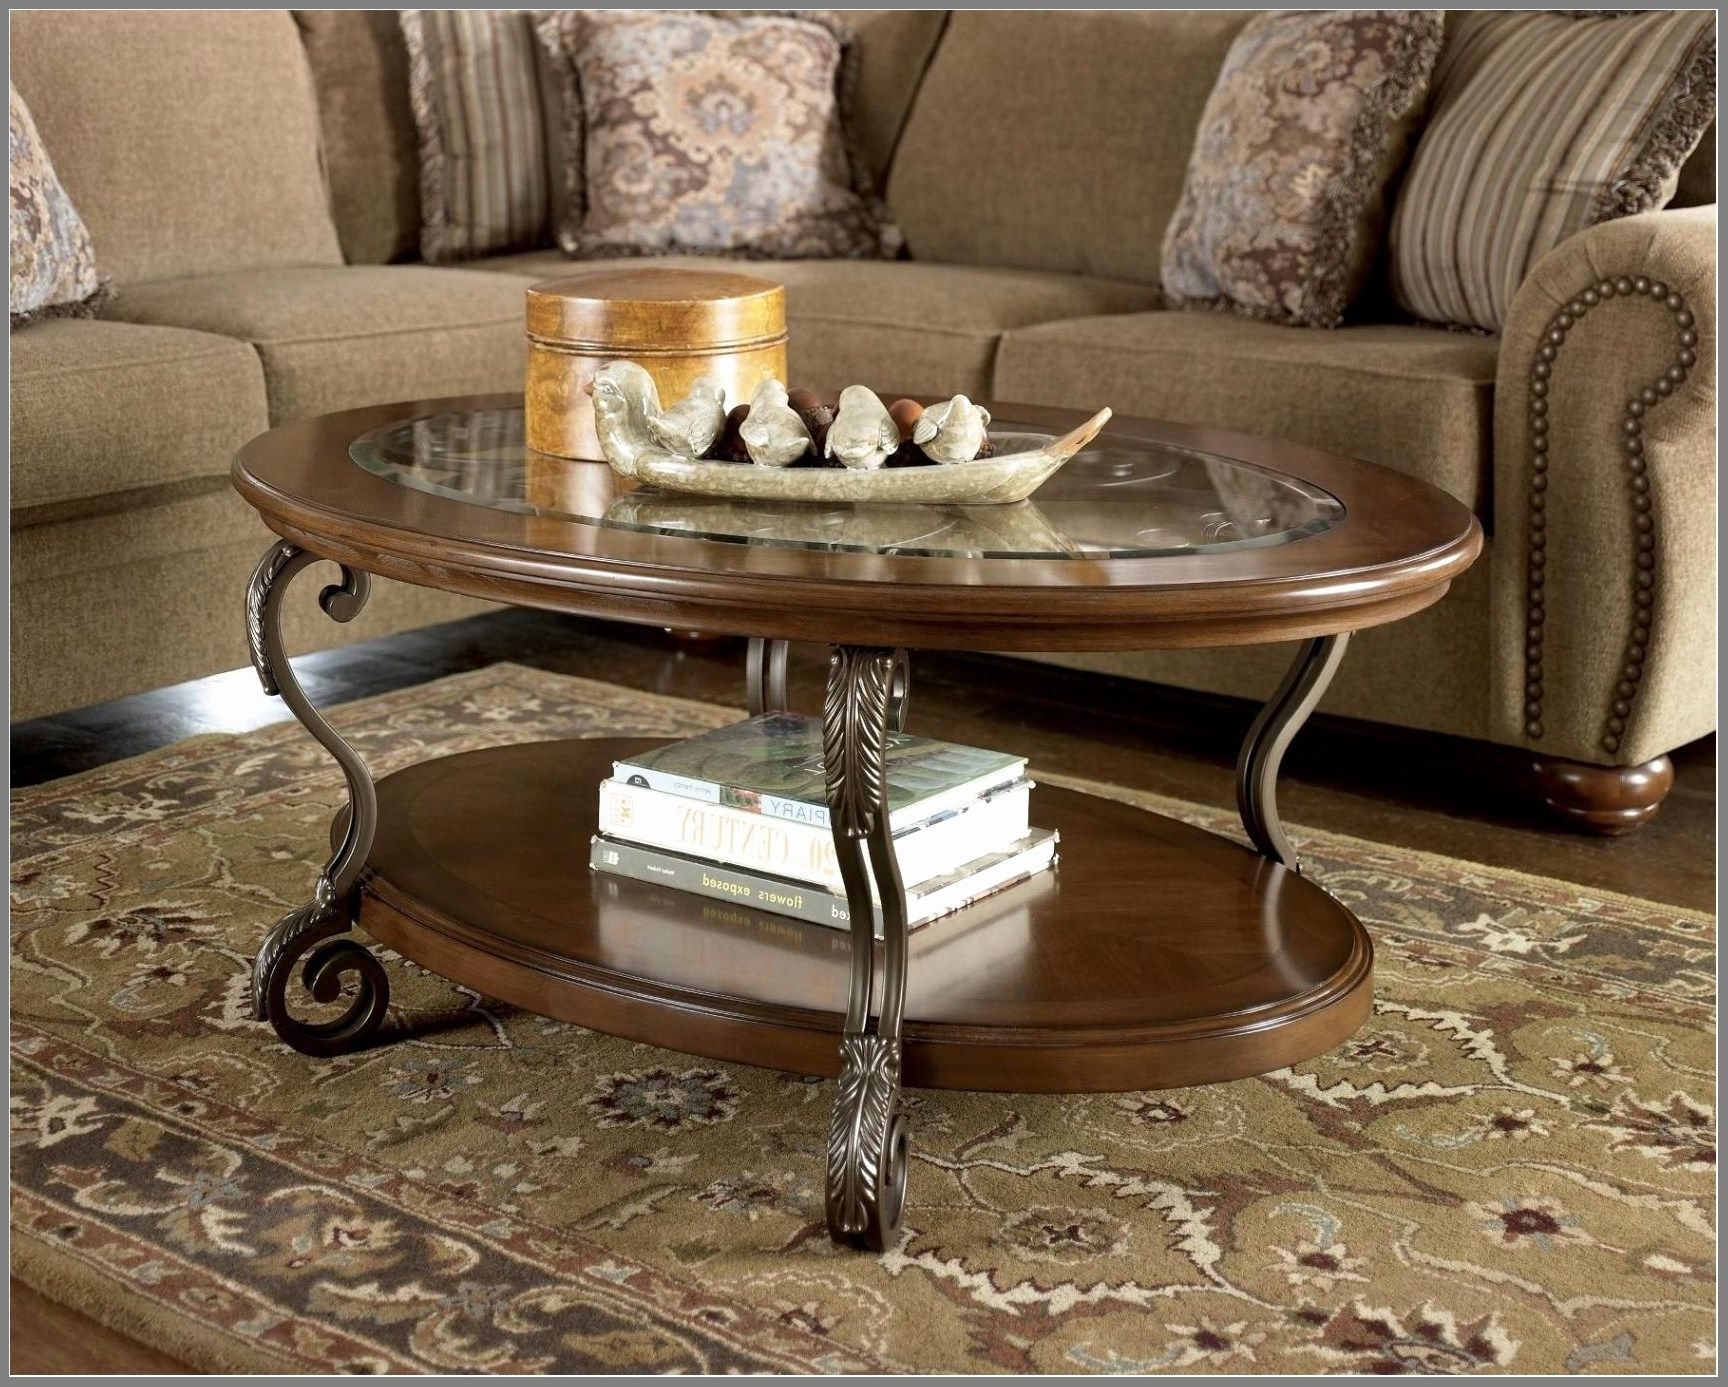 round glass coffee table decor tables ideas regarding designs beautifull hard wood with natural plant small pertaining end kmart kitchen curtains clear plexiglass primitive